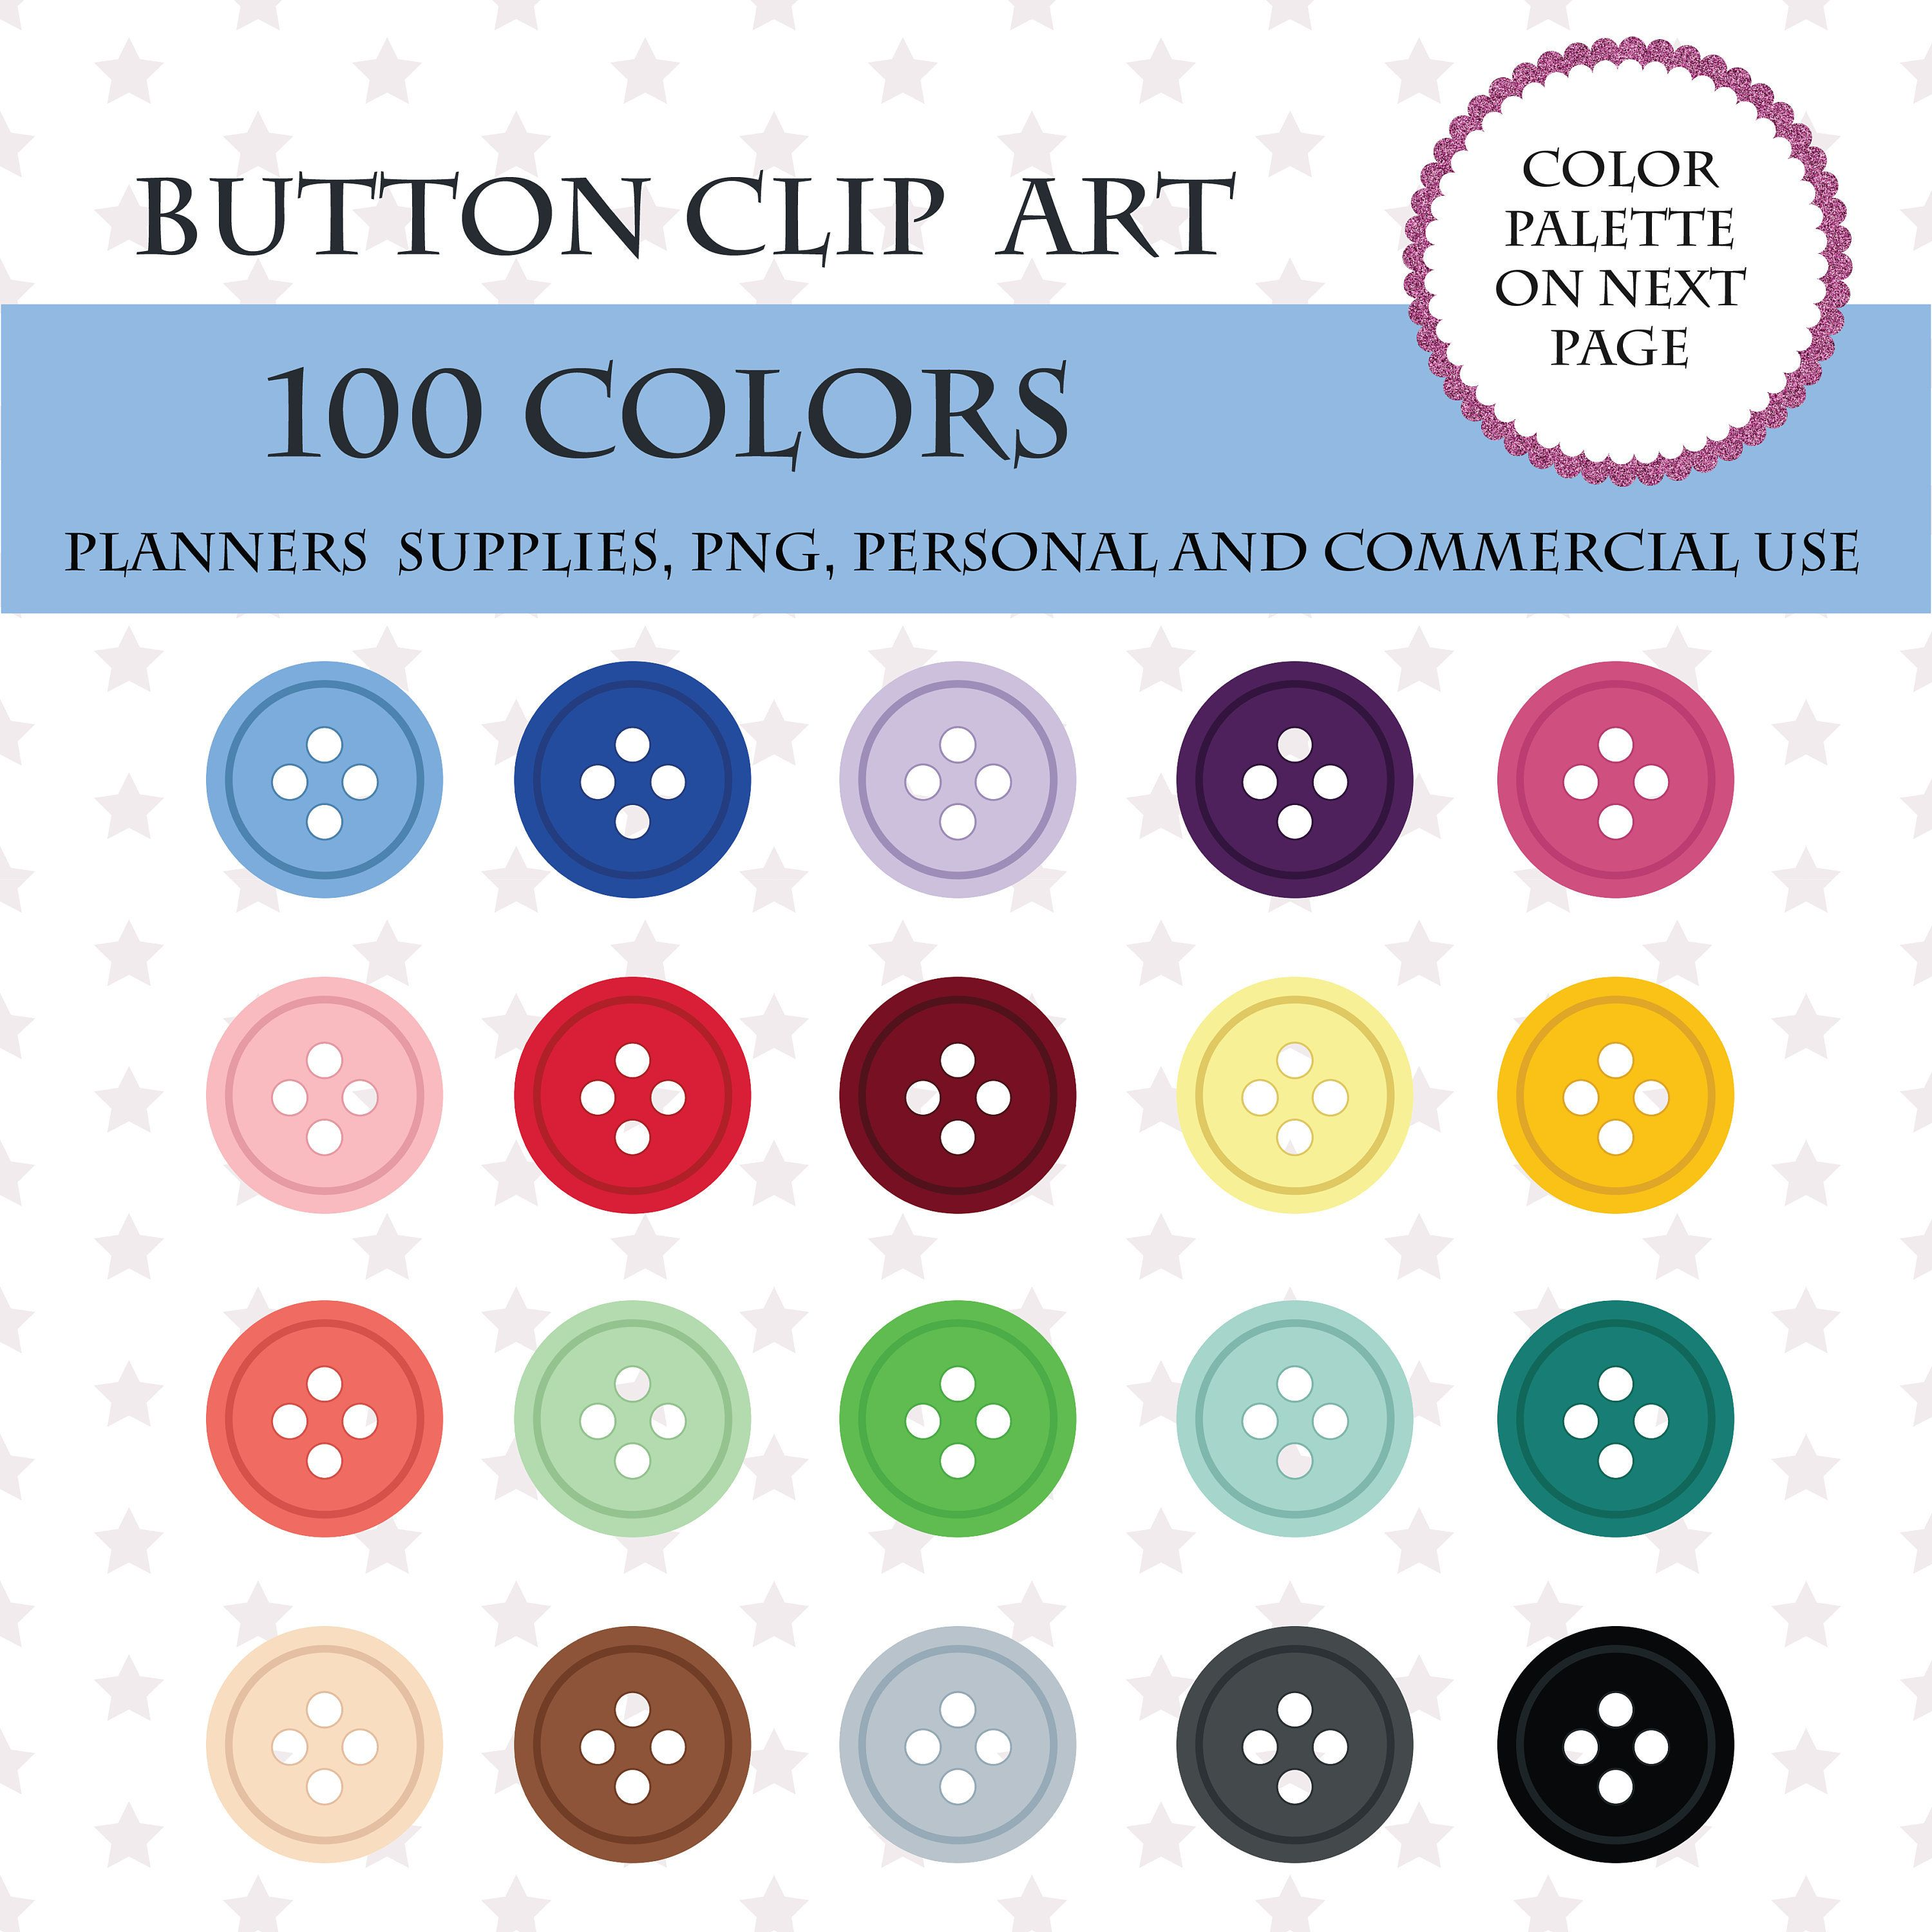 medium resolution of printable 100 buttons clipart button art digital sewing elements clip art cute rainbow buttons commercal use pl61